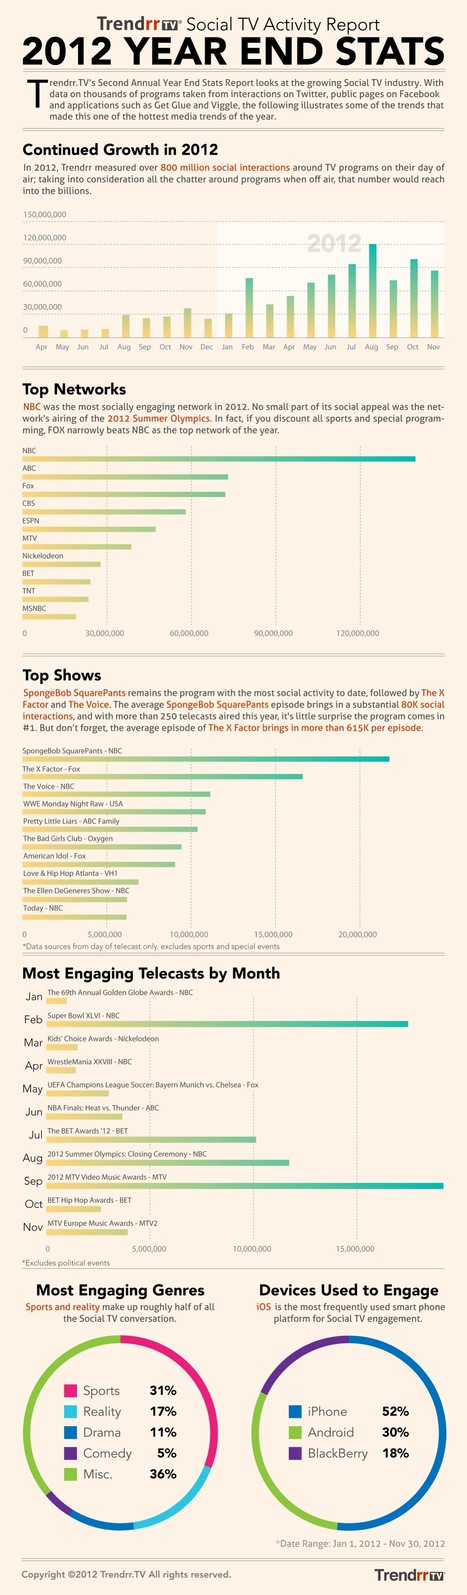 2012 takeaways: sports and SpongeBob dominated social TV [infographic] - Lost Remote | Second Screen, Social TV & Gamification | Scoop.it